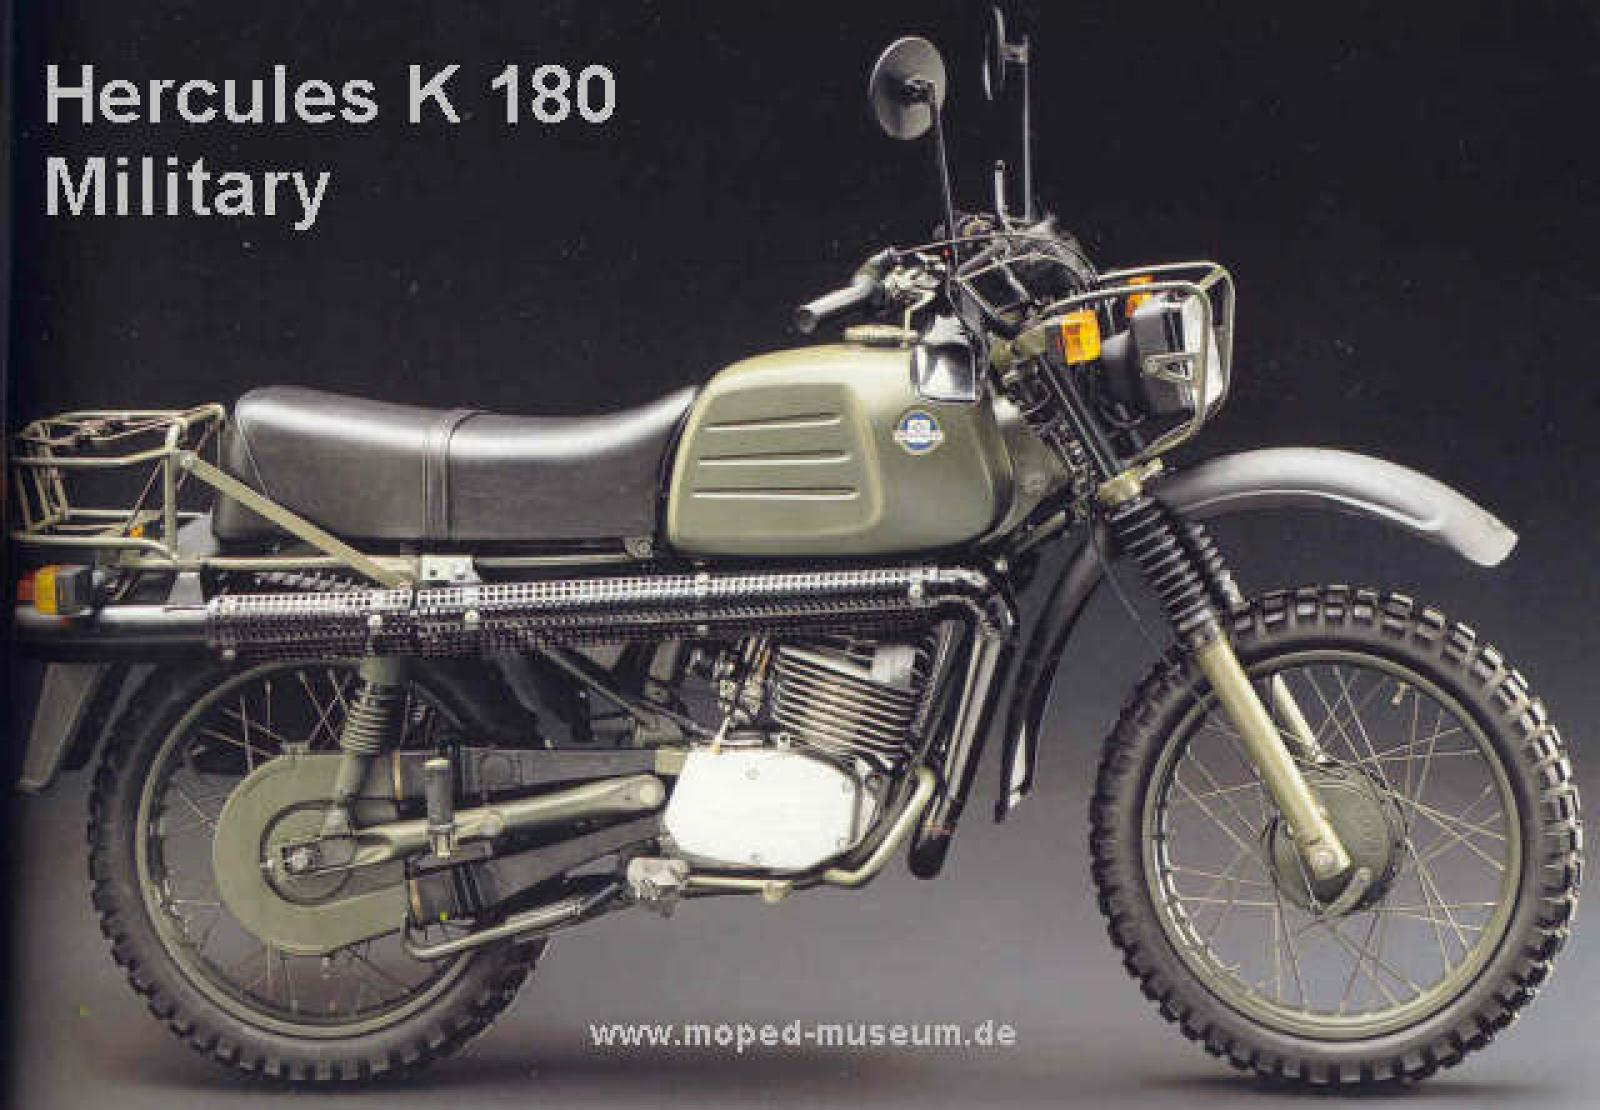 Hercules K 125 Military 1990 images #74765